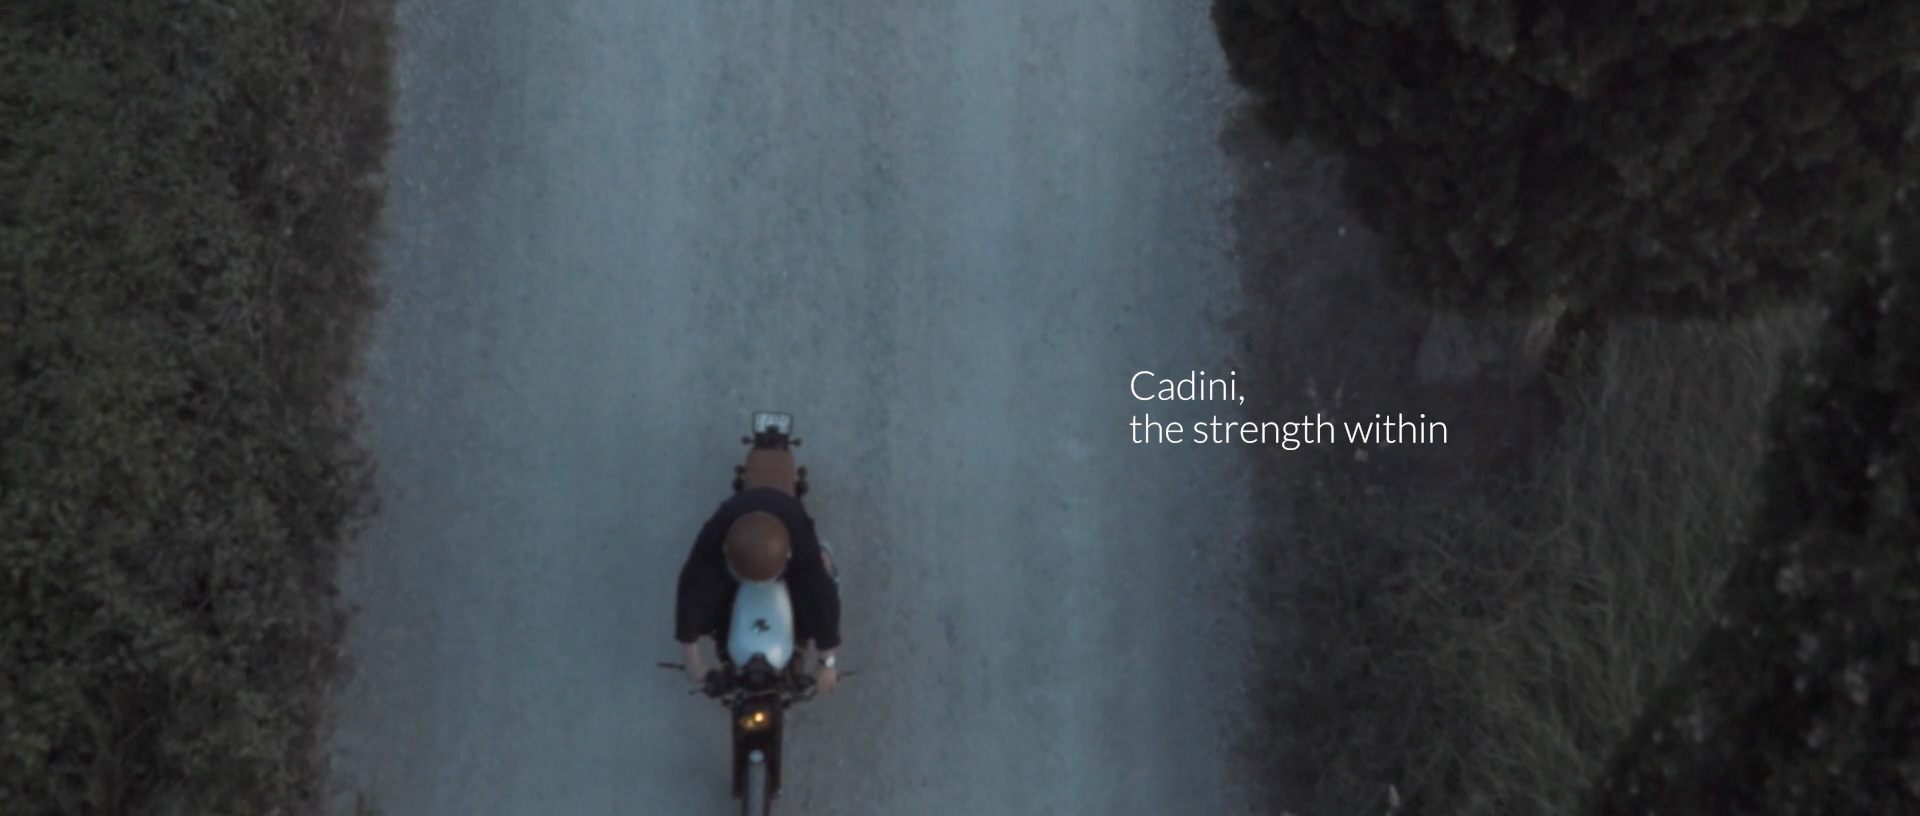 Cadini, the power within